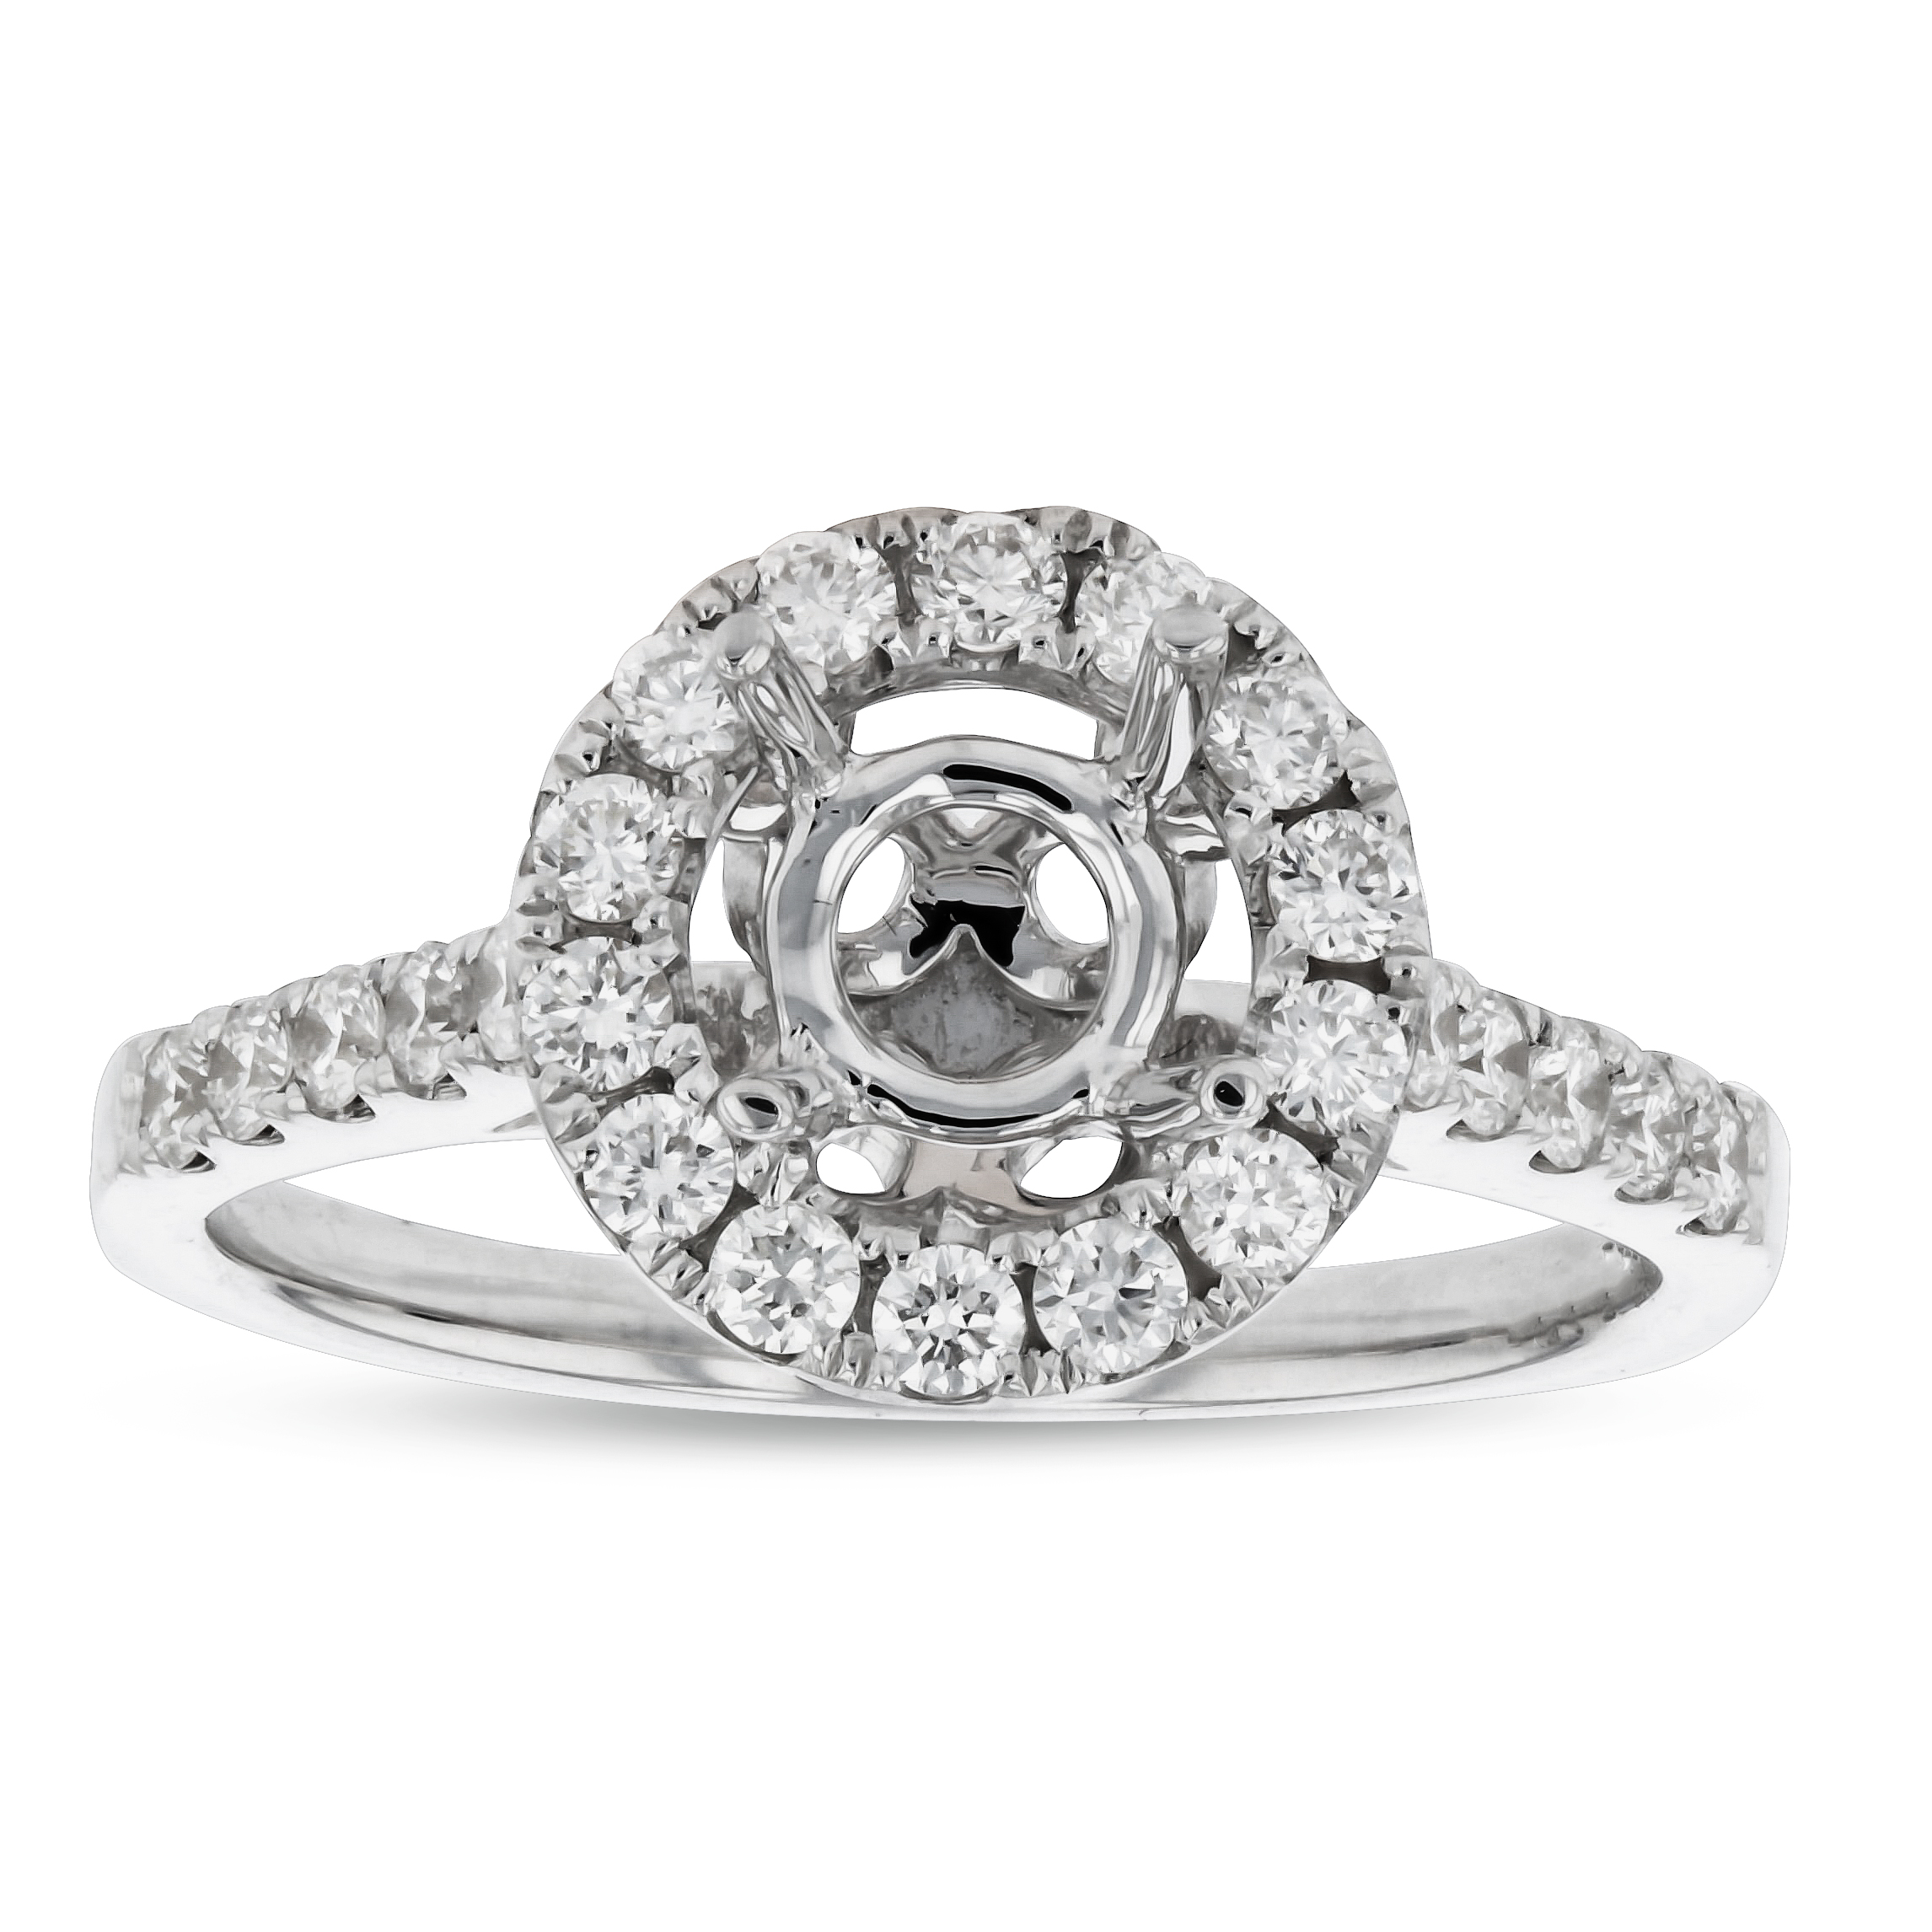 View 0.42ctw Diamond Semi Mount Engagement Ring in 18k White Gold